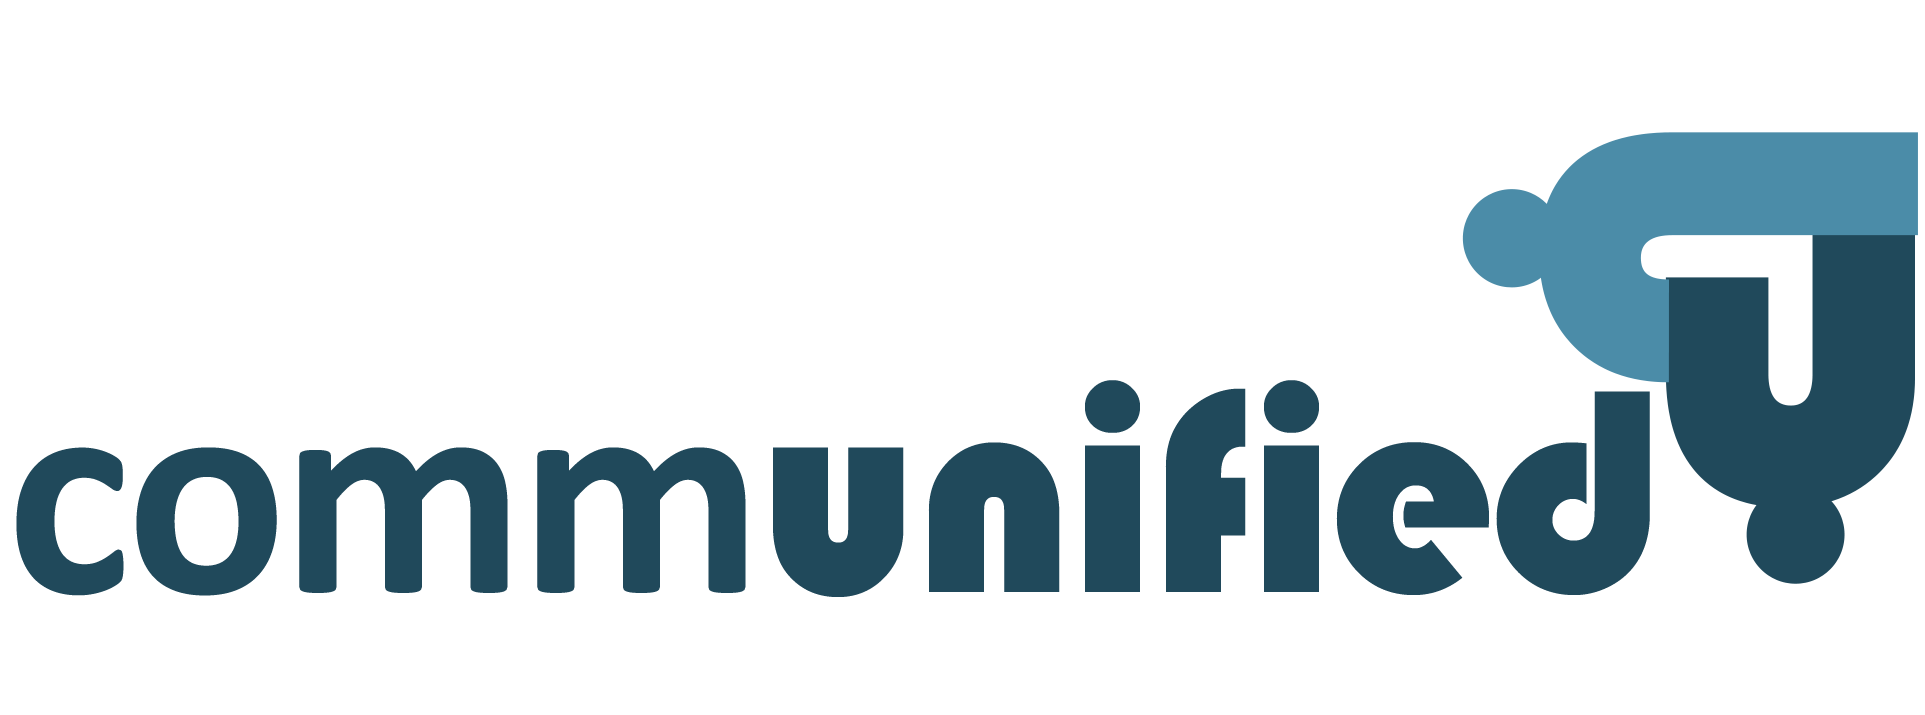 logo_text_mid_large.png